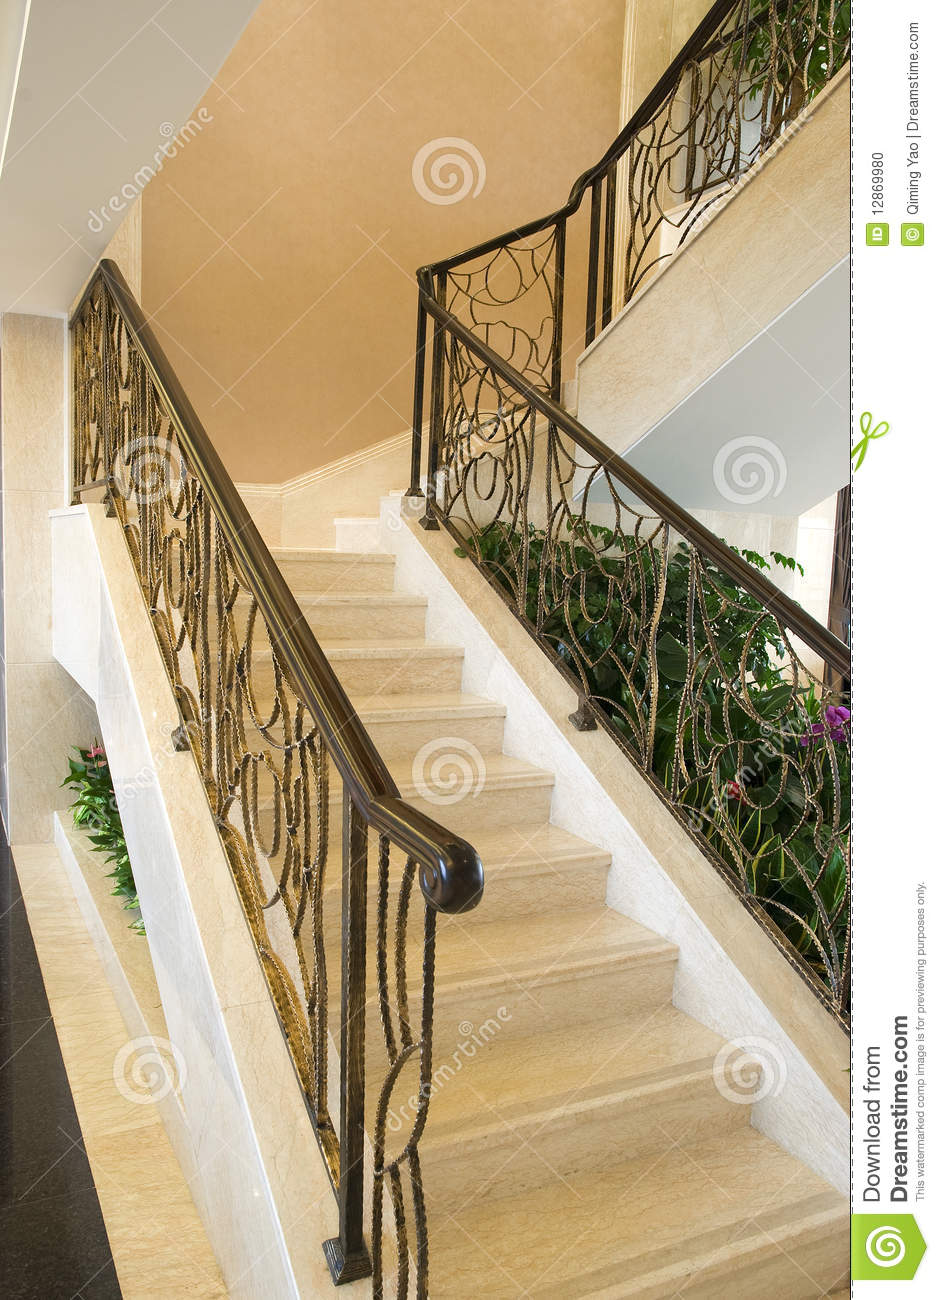 Stairs in the modern house stock photo image 12869980 - Stairs in home ...